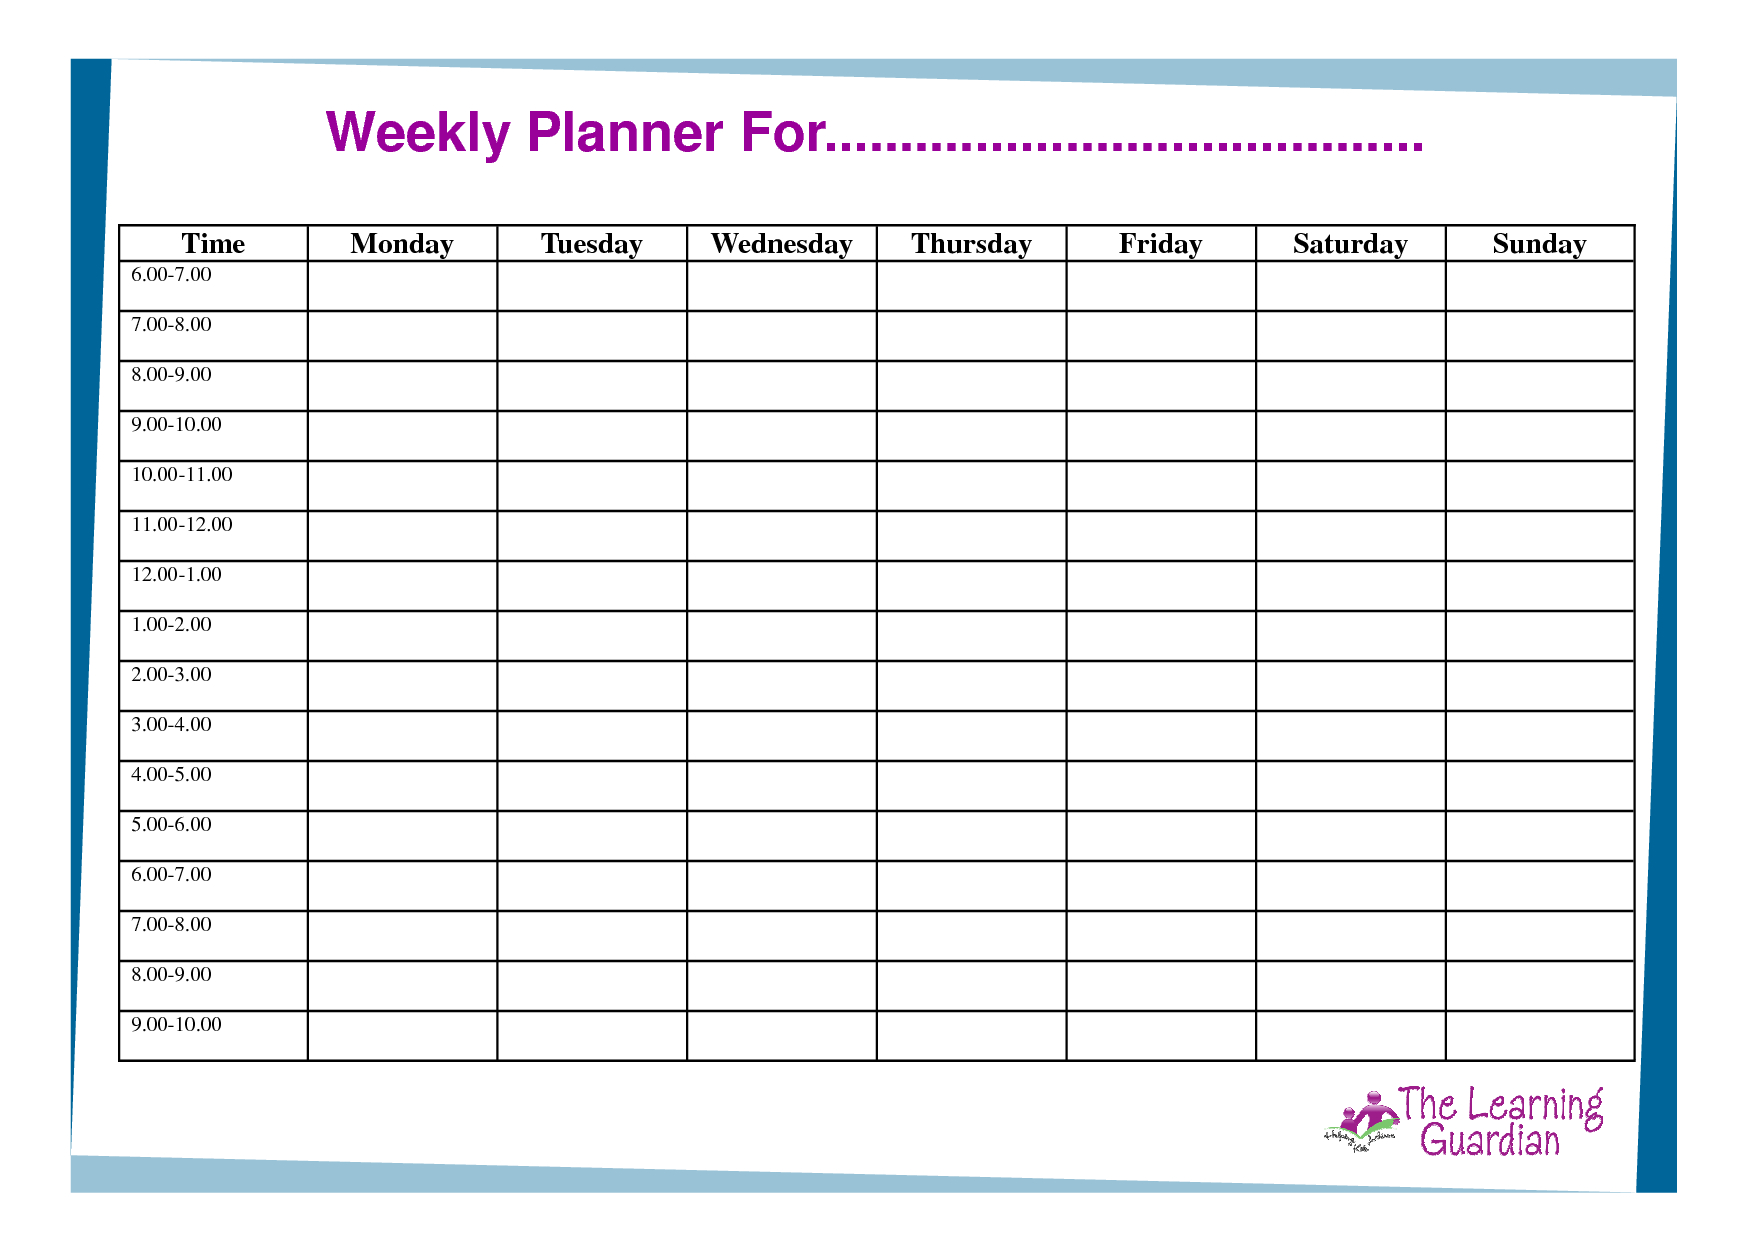 Free Printable Weekly Calendar Templates | Weekly Planner For Time inside Blank Weekly Calender With Time